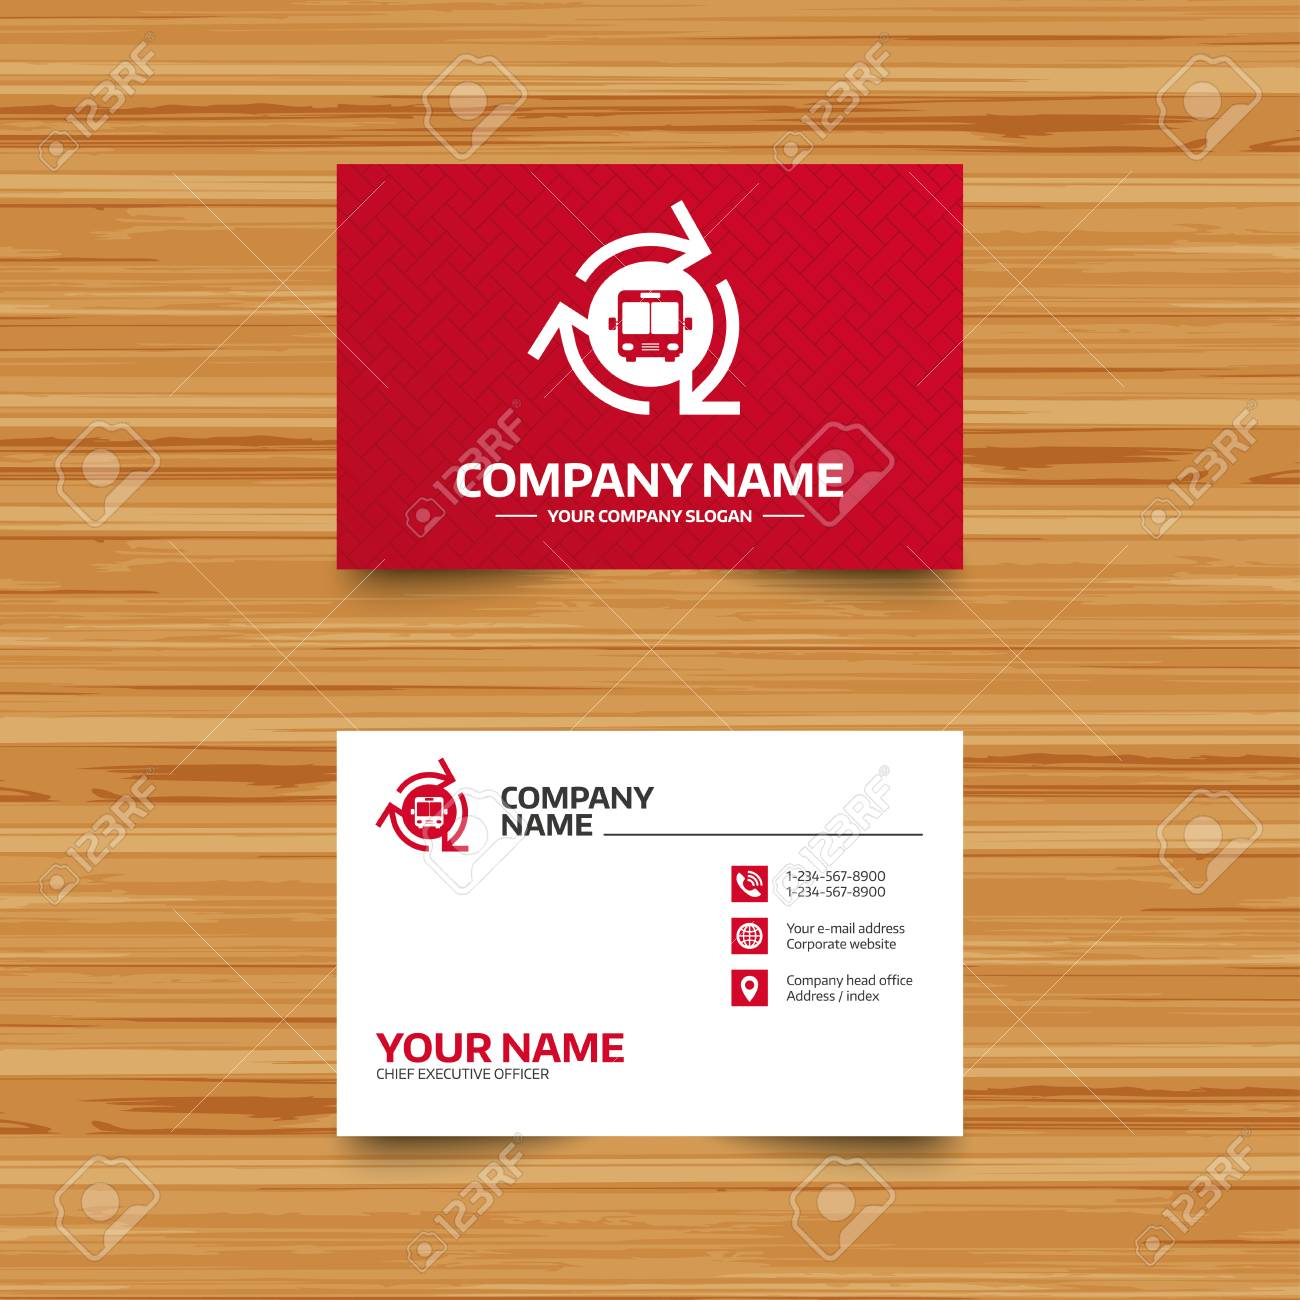 Business card template bus shuttle icon public transport stop business card template bus shuttle icon public transport stop symbol phone globe reheart Gallery